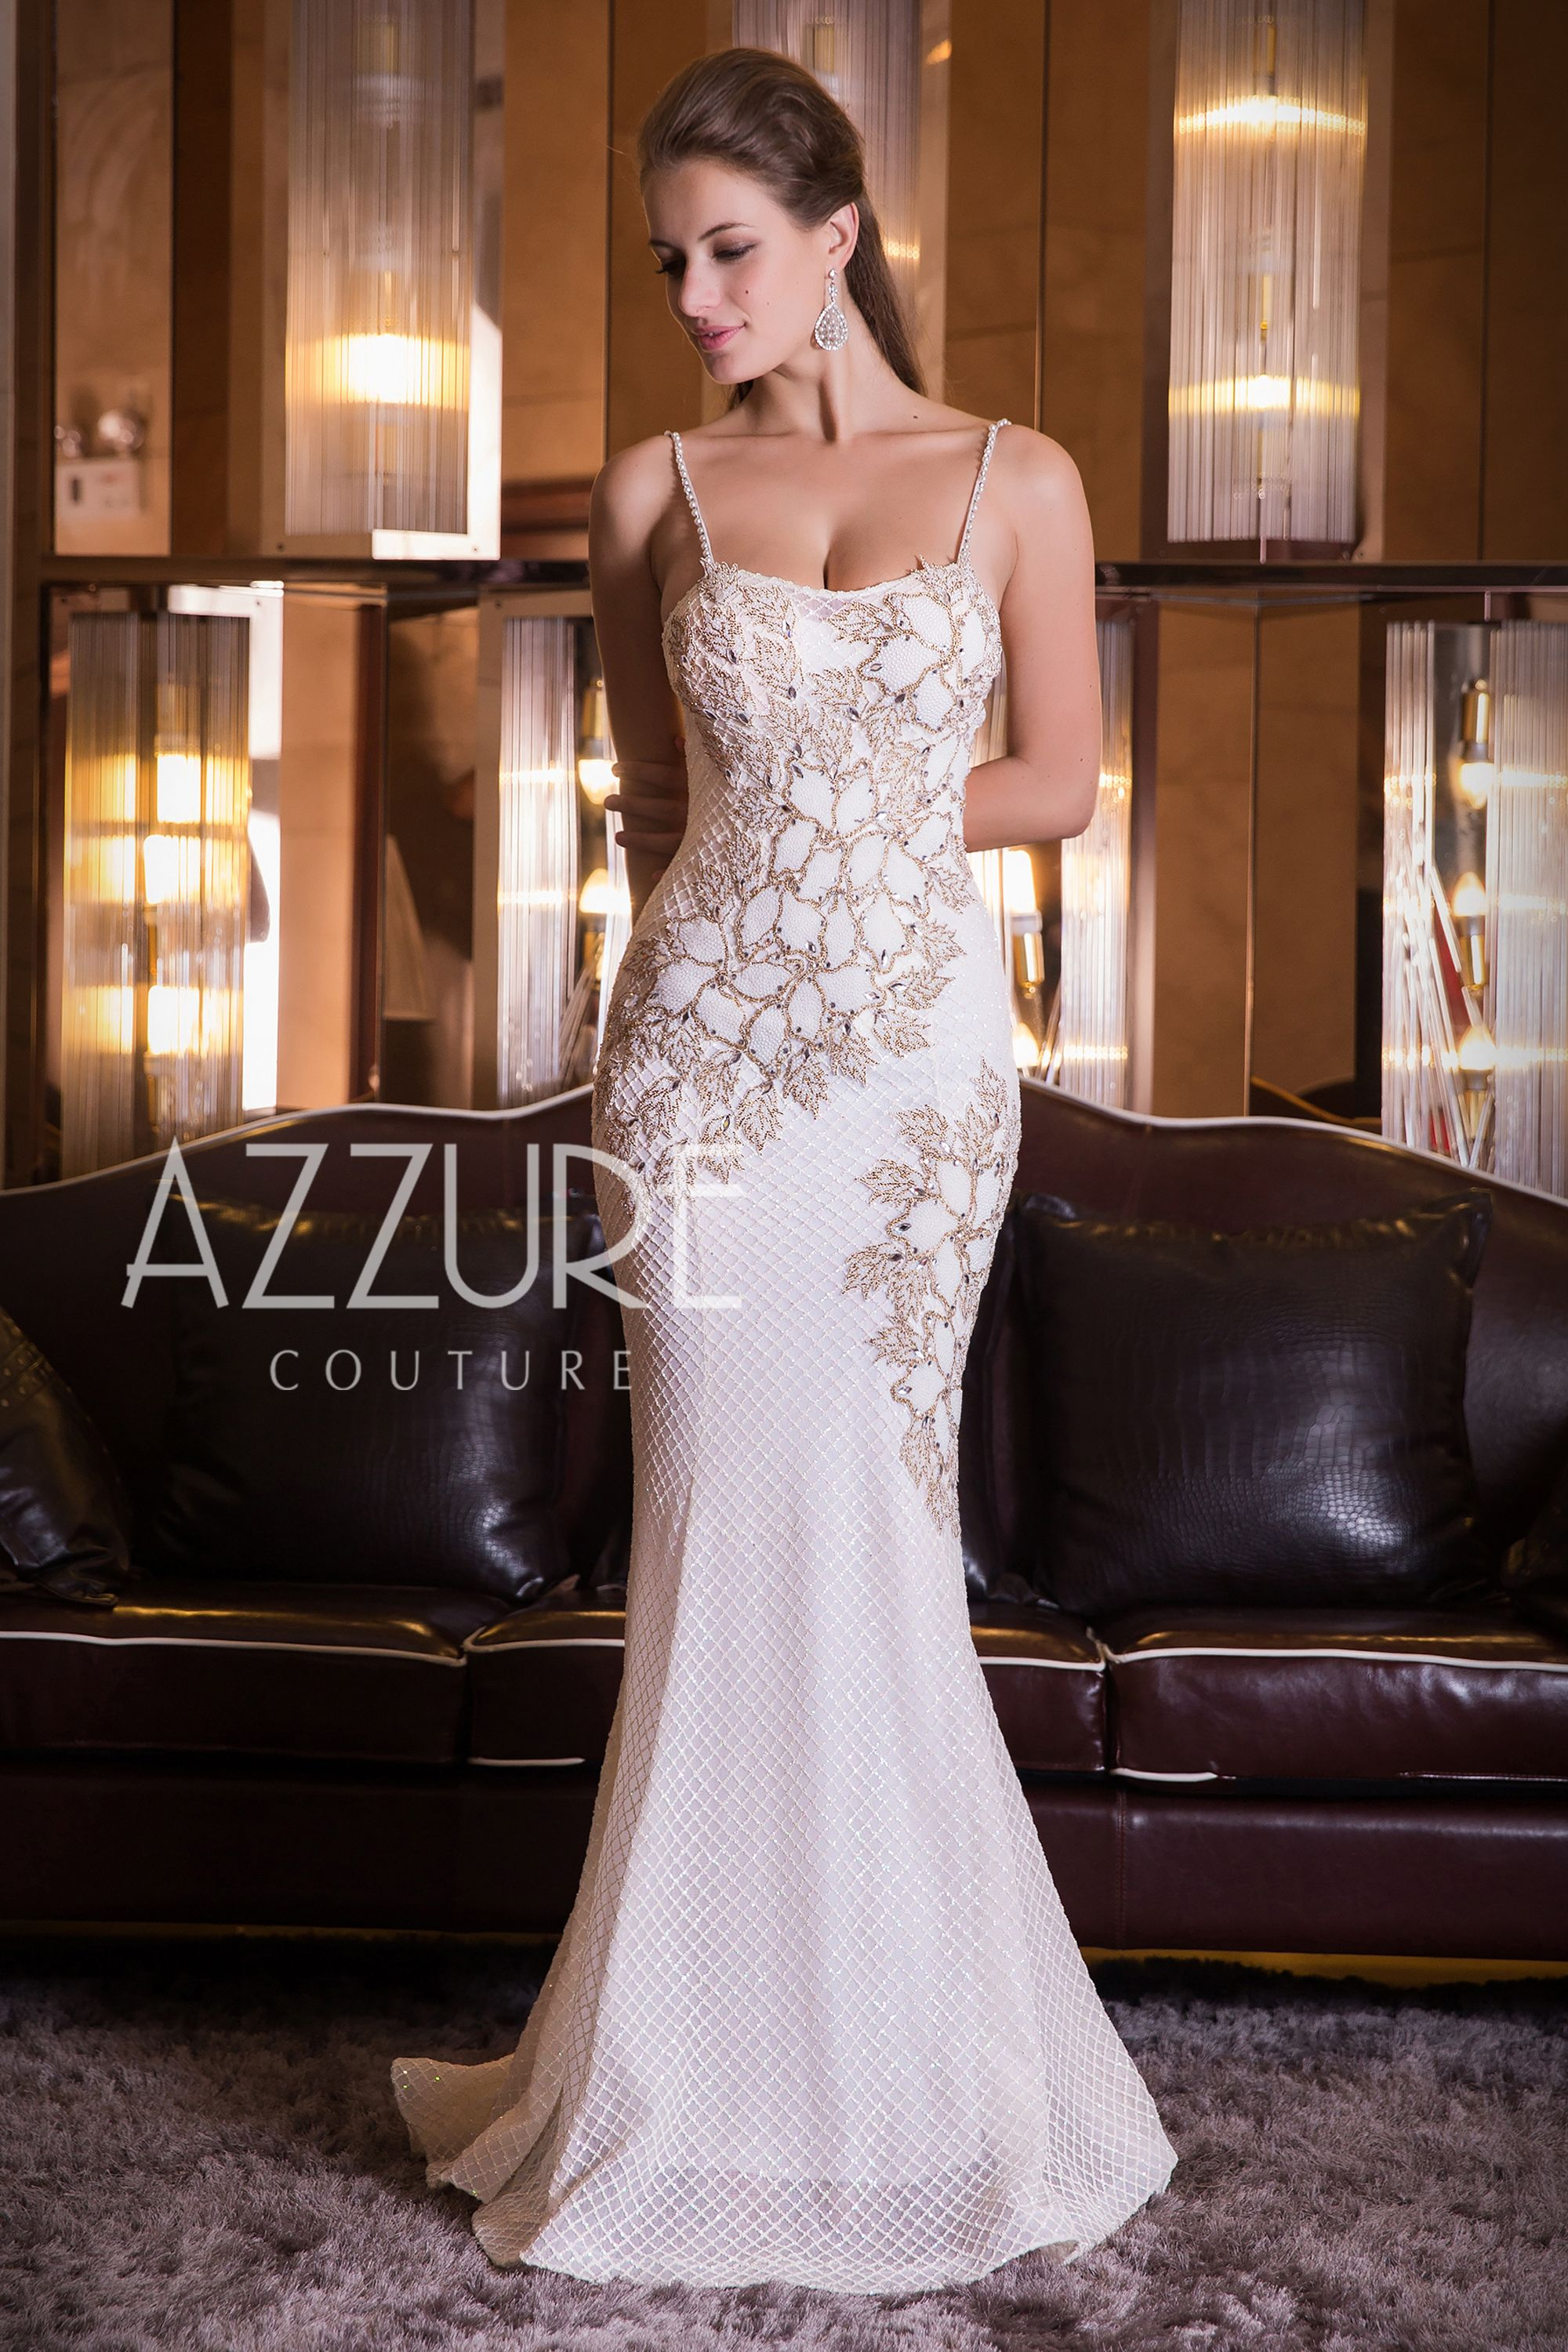 Spaghetti strap evening dress with beaded lace appliques ivory